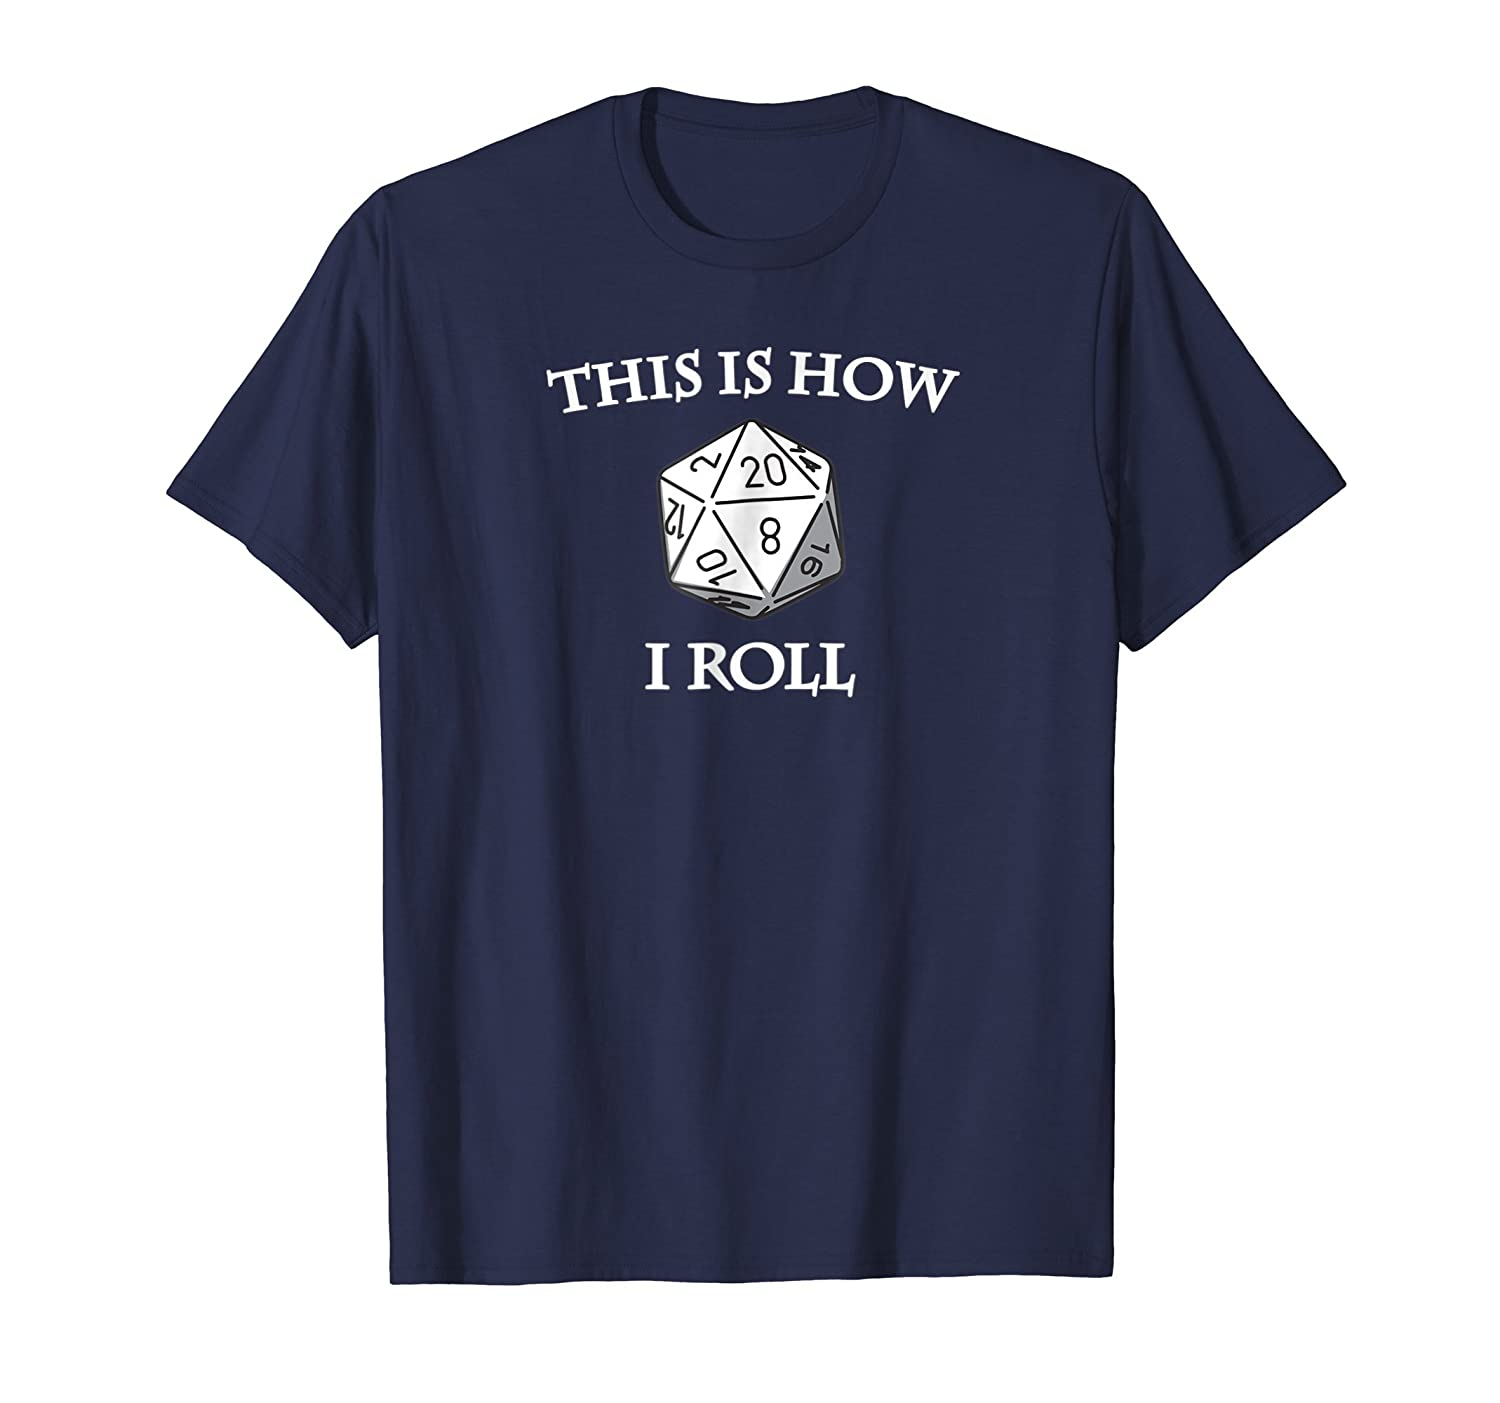 D20 This Is How I Roll RPG Dungeons Game Tee Shirt